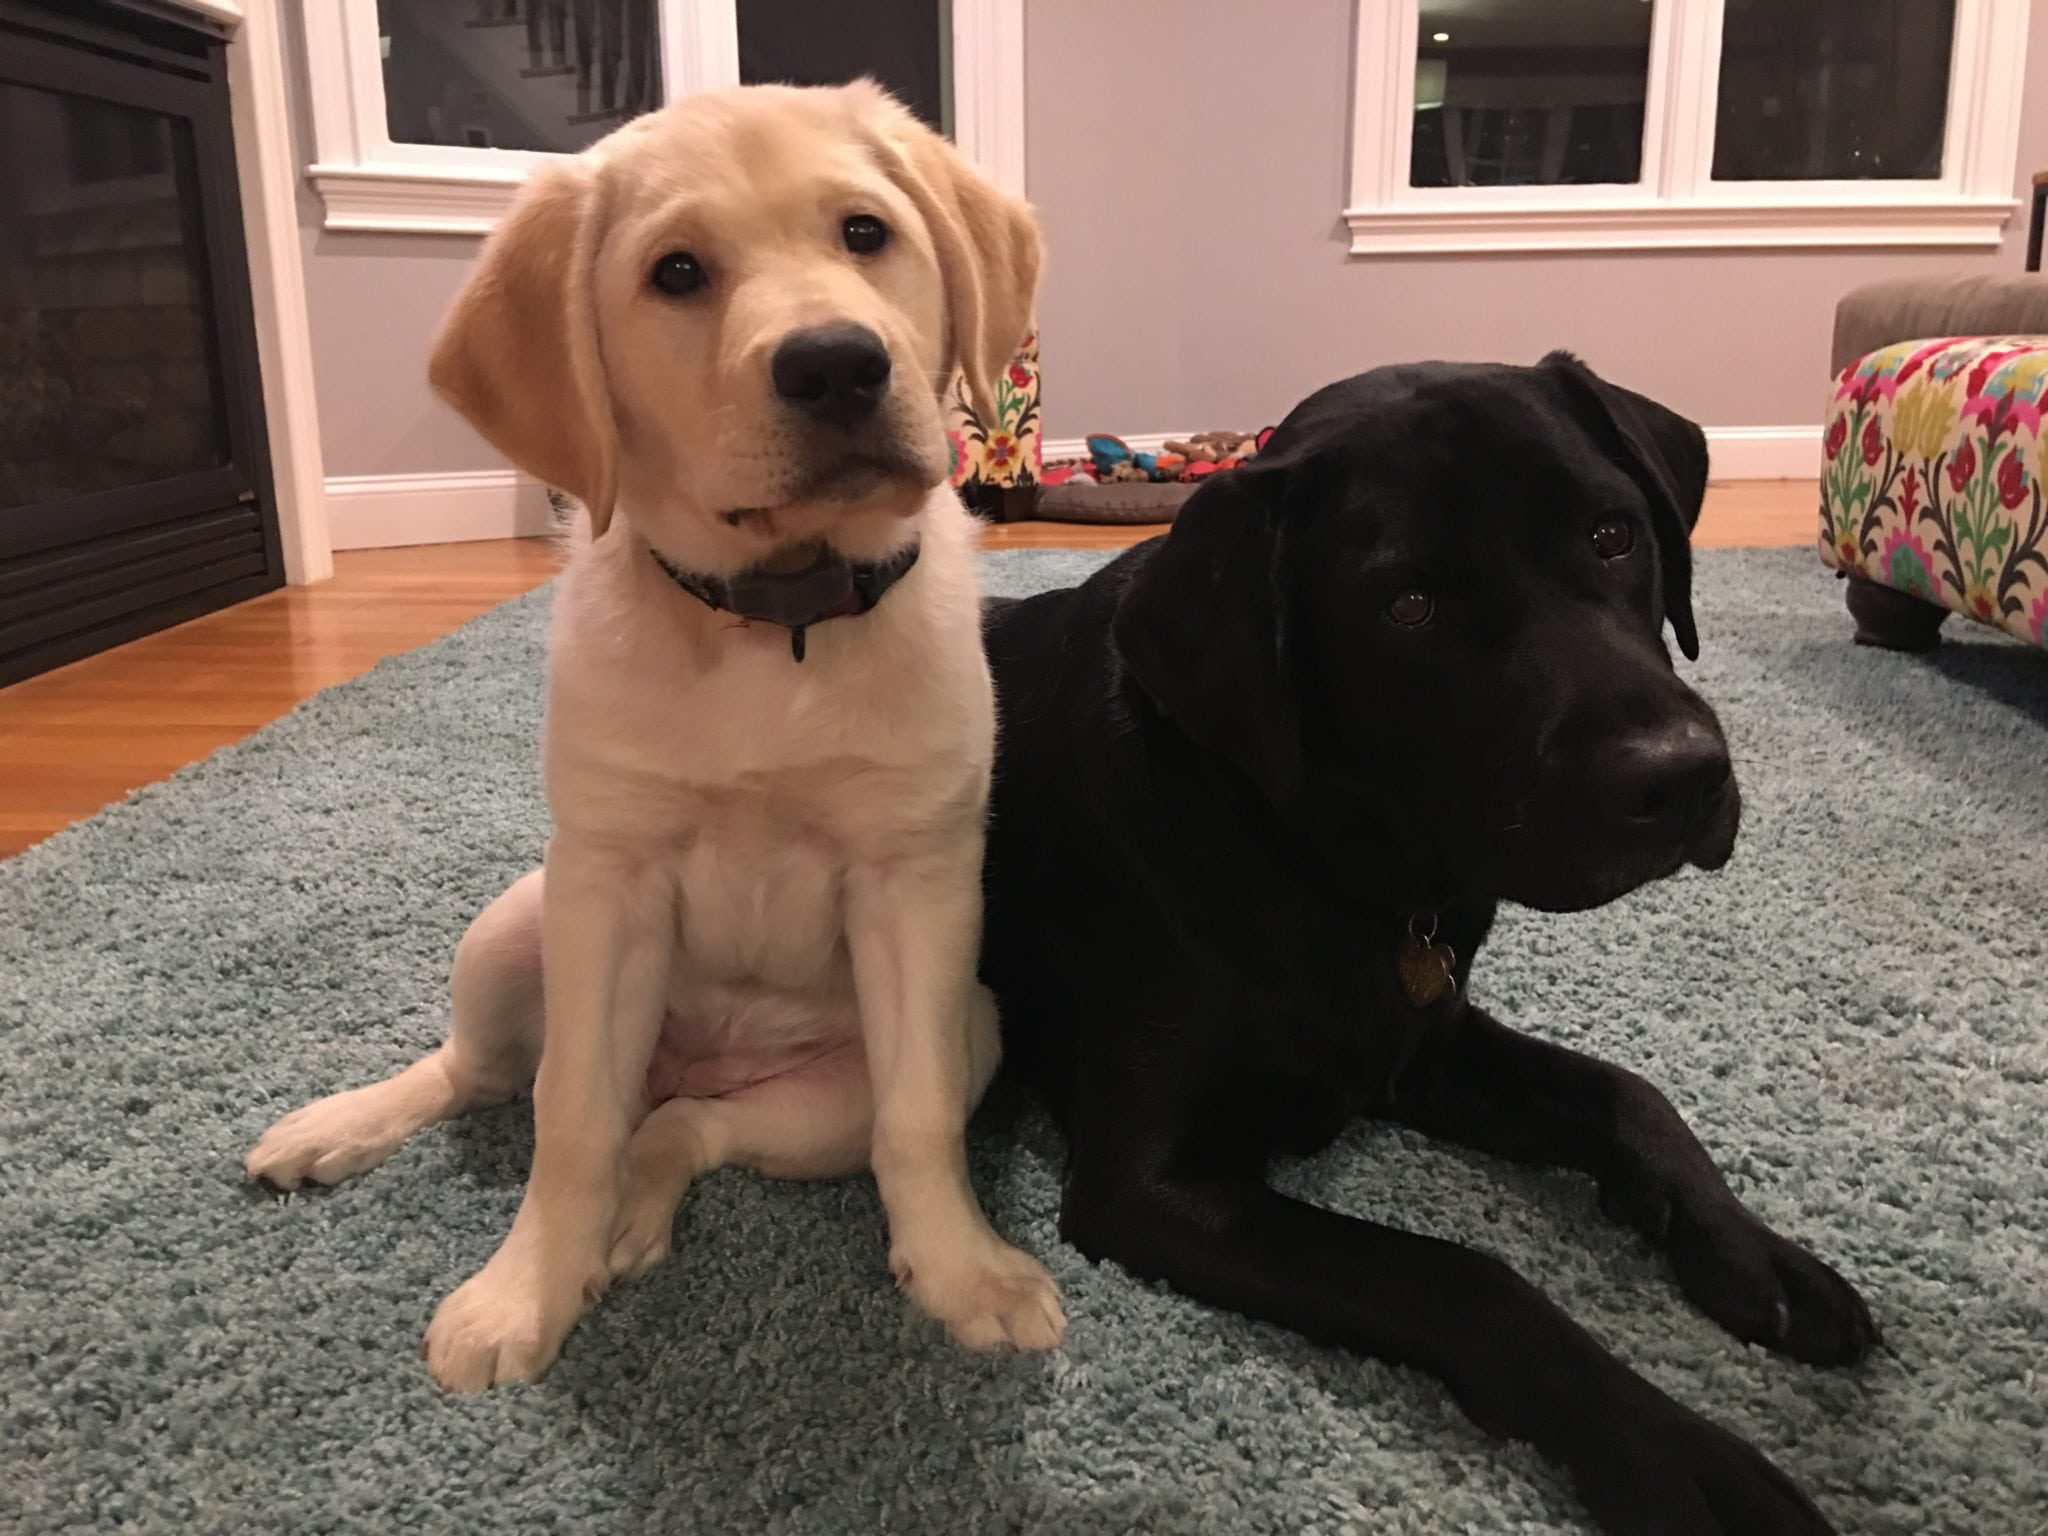 Nugget, yellow lab, and Cricket, black lab, both female